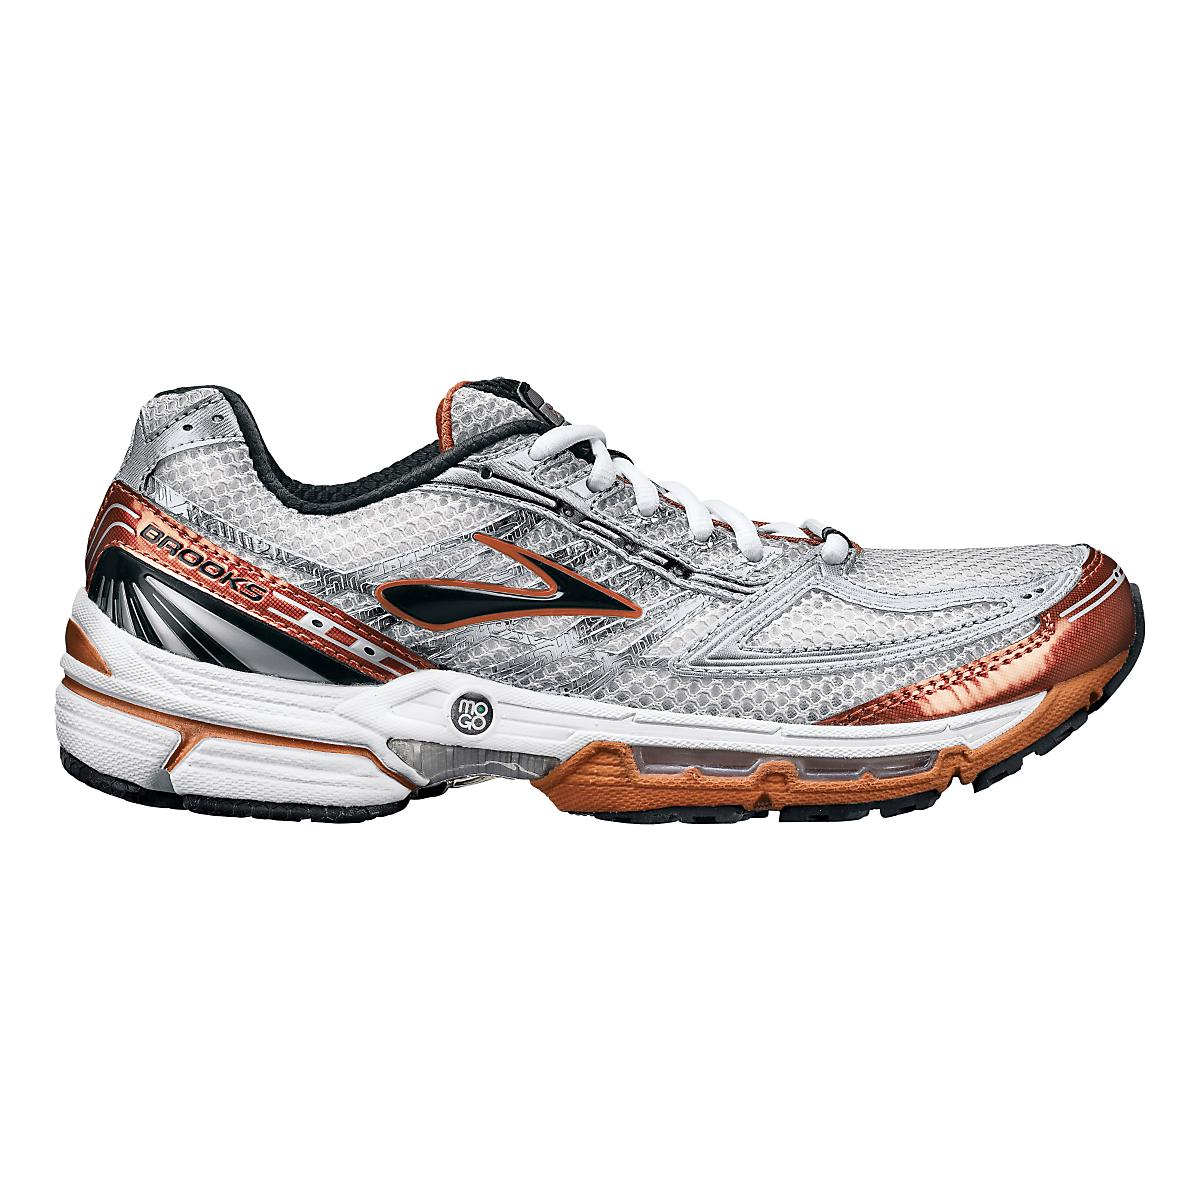 03d00ab9dc1 Mens Brooks Infiniti 2 Running Shoe at Road Runner Sports